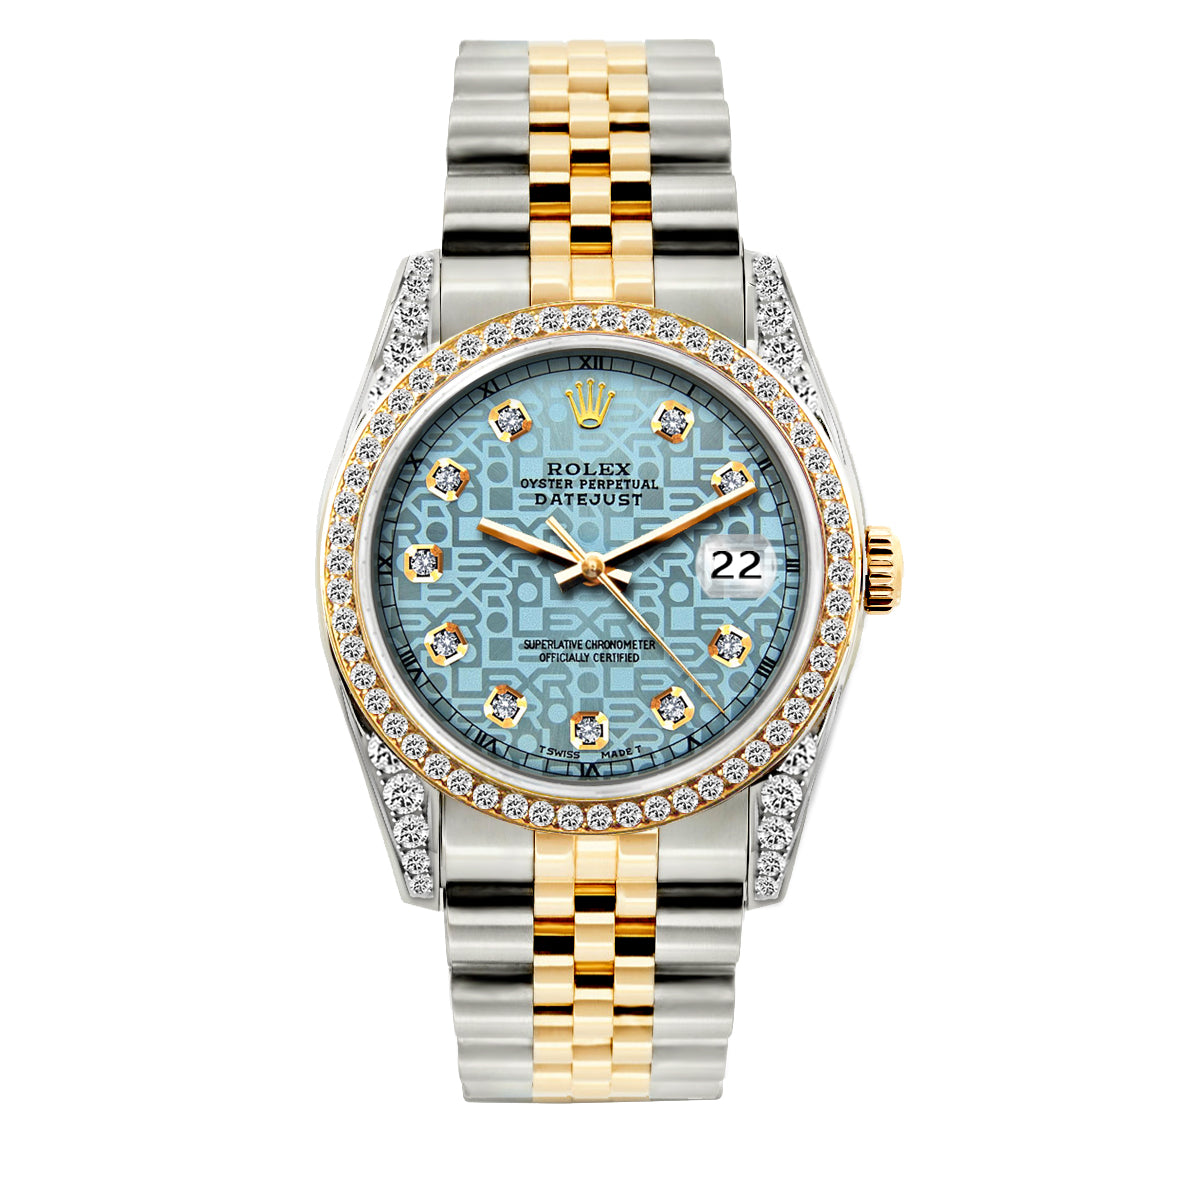 Rolex Datejust 36mm Yellow Gold and Stainless Steel Bracelet Blue Rolex Dial w/ Diamond Bezel and Lugs